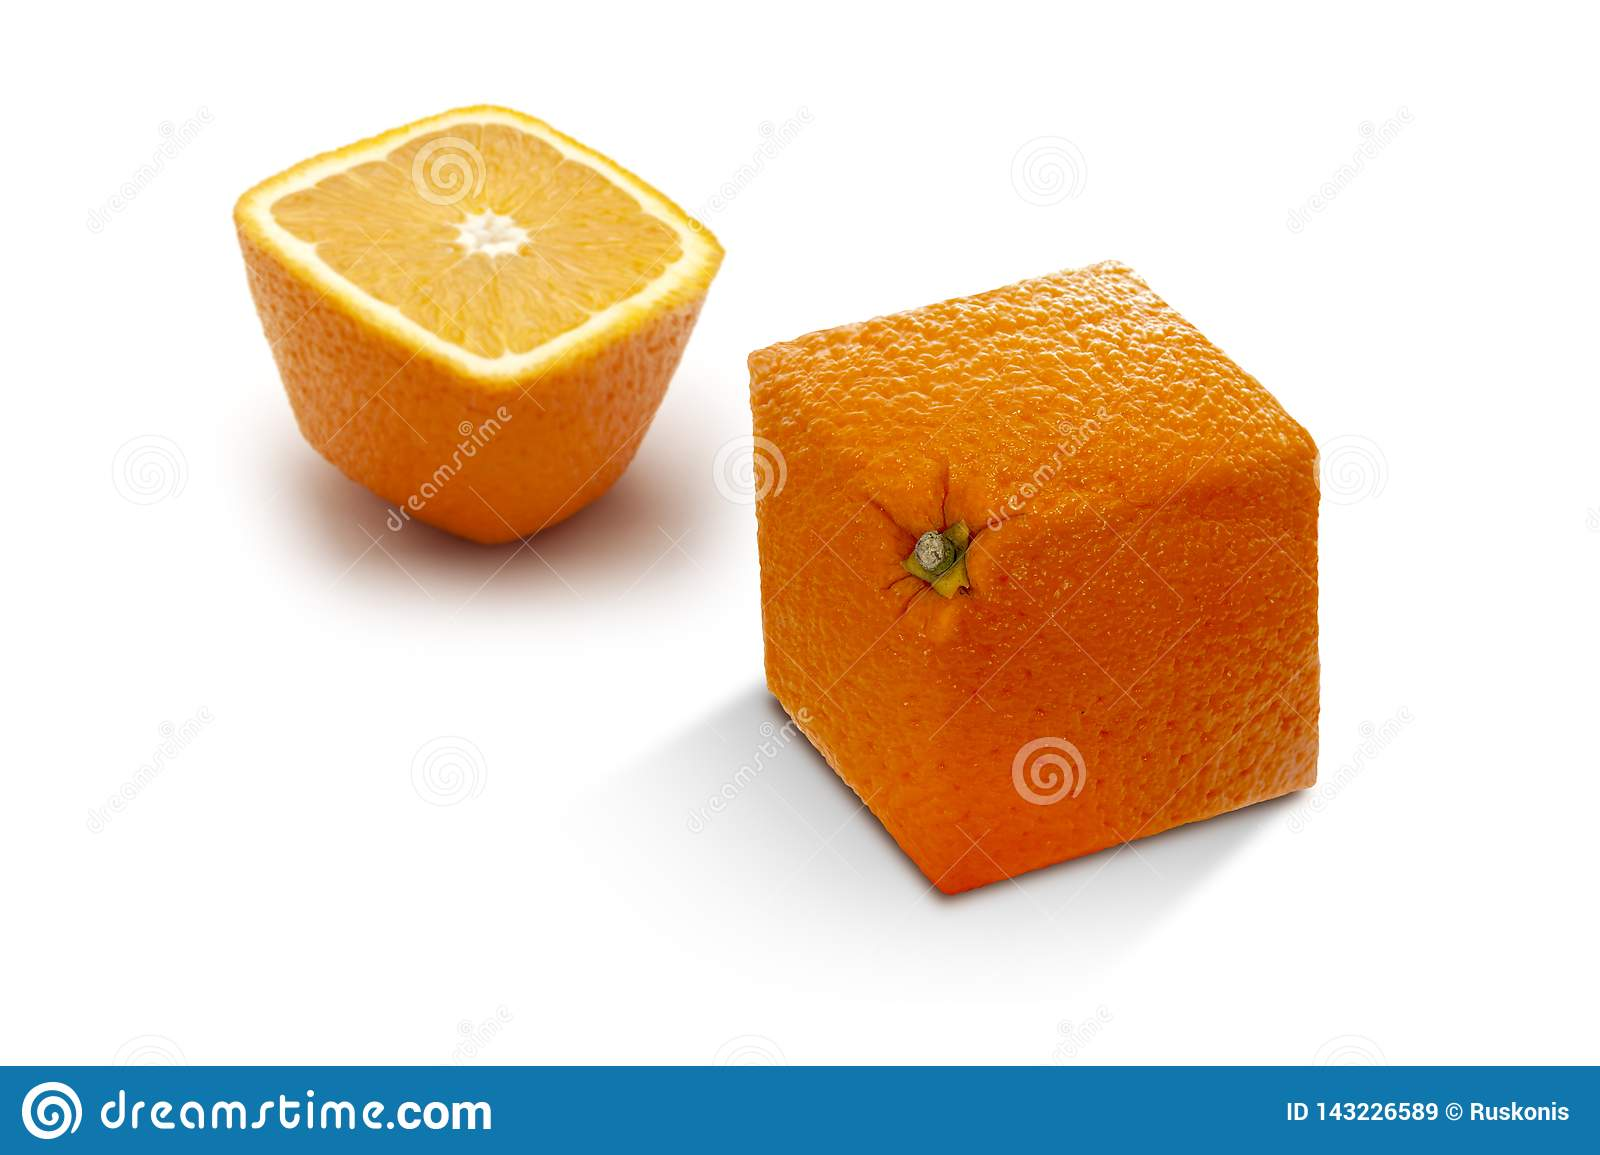 Two angled ripe oranges on a white background